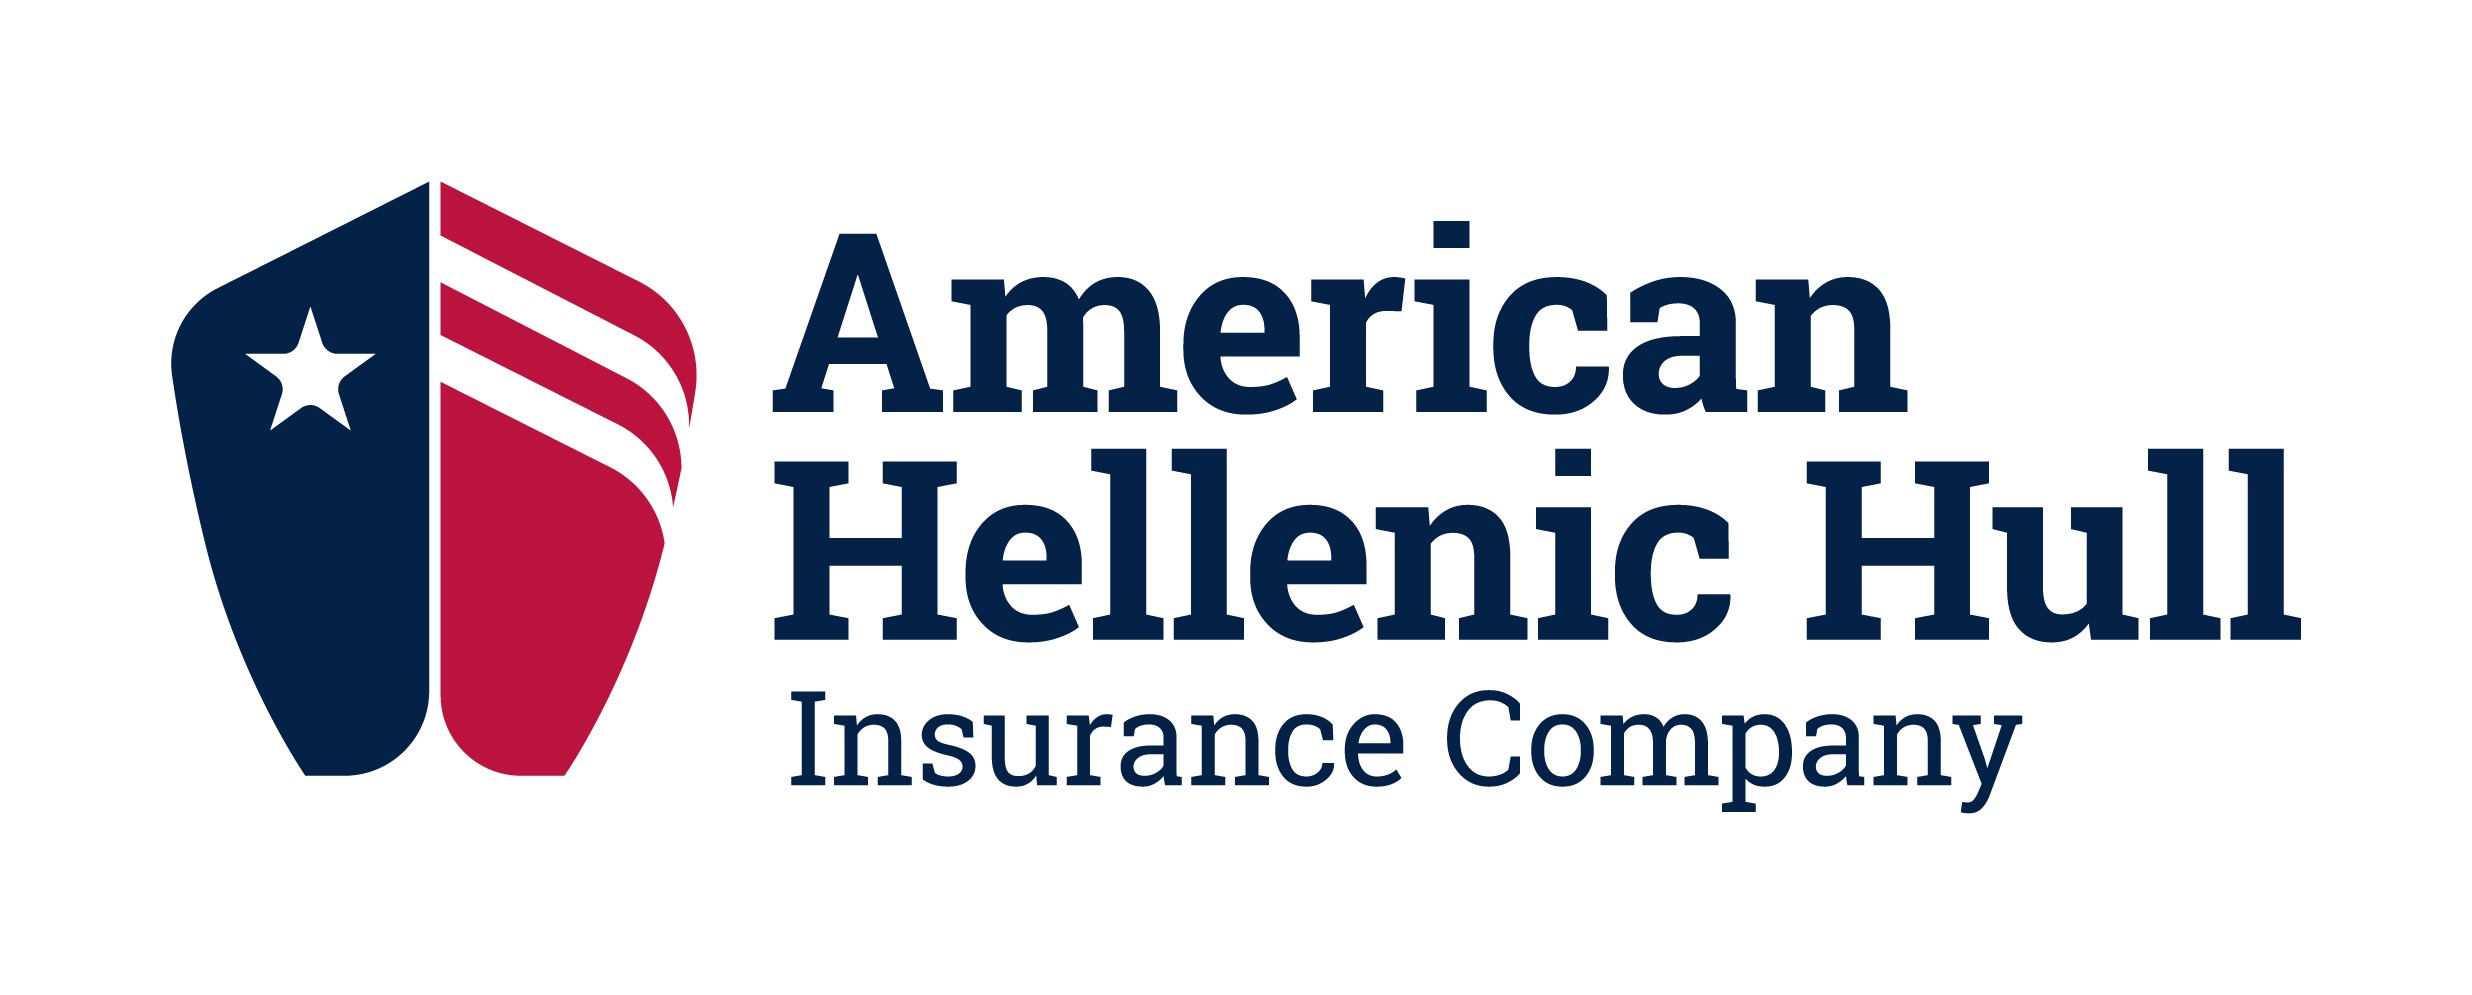 American Hellenic Hull Insurance Company Ltd